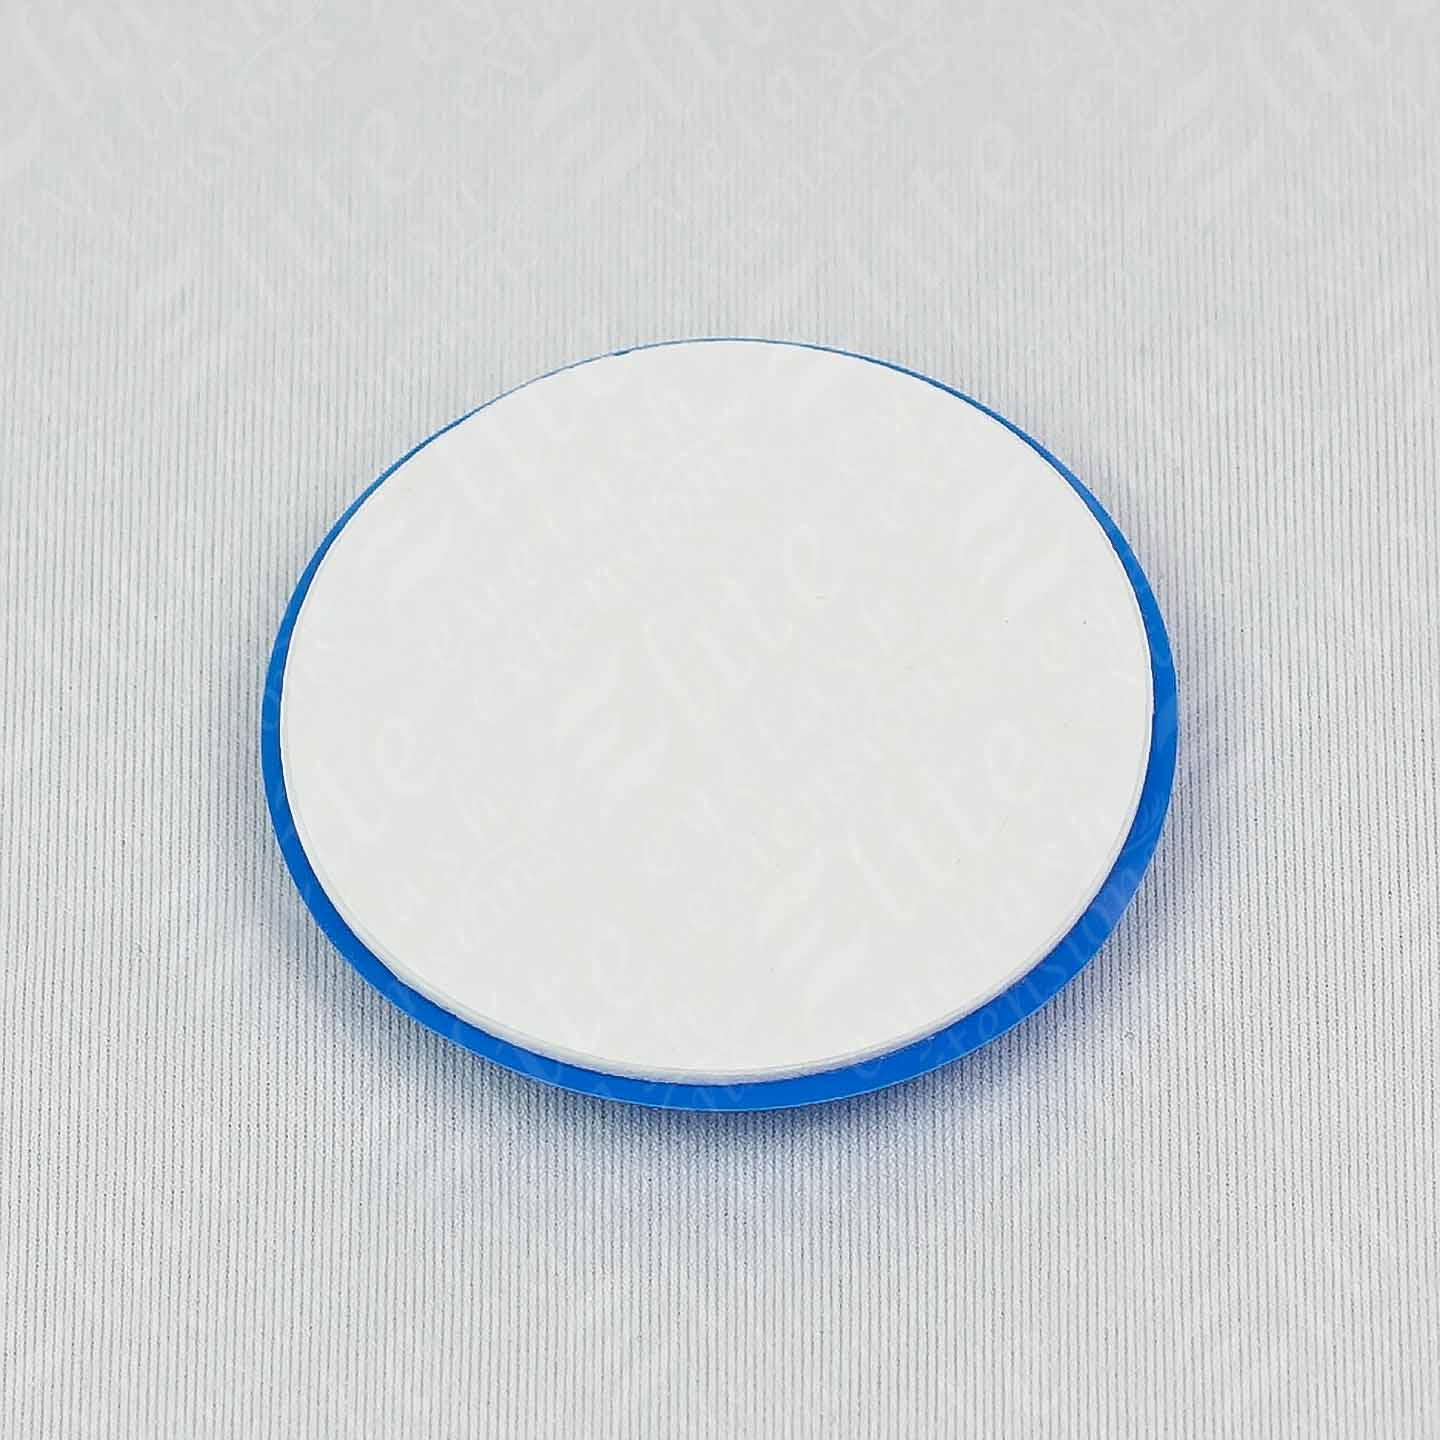 Elite-Eyelash-Extensions-Adhesive-Holders-Glue-drop-holder-blue-2